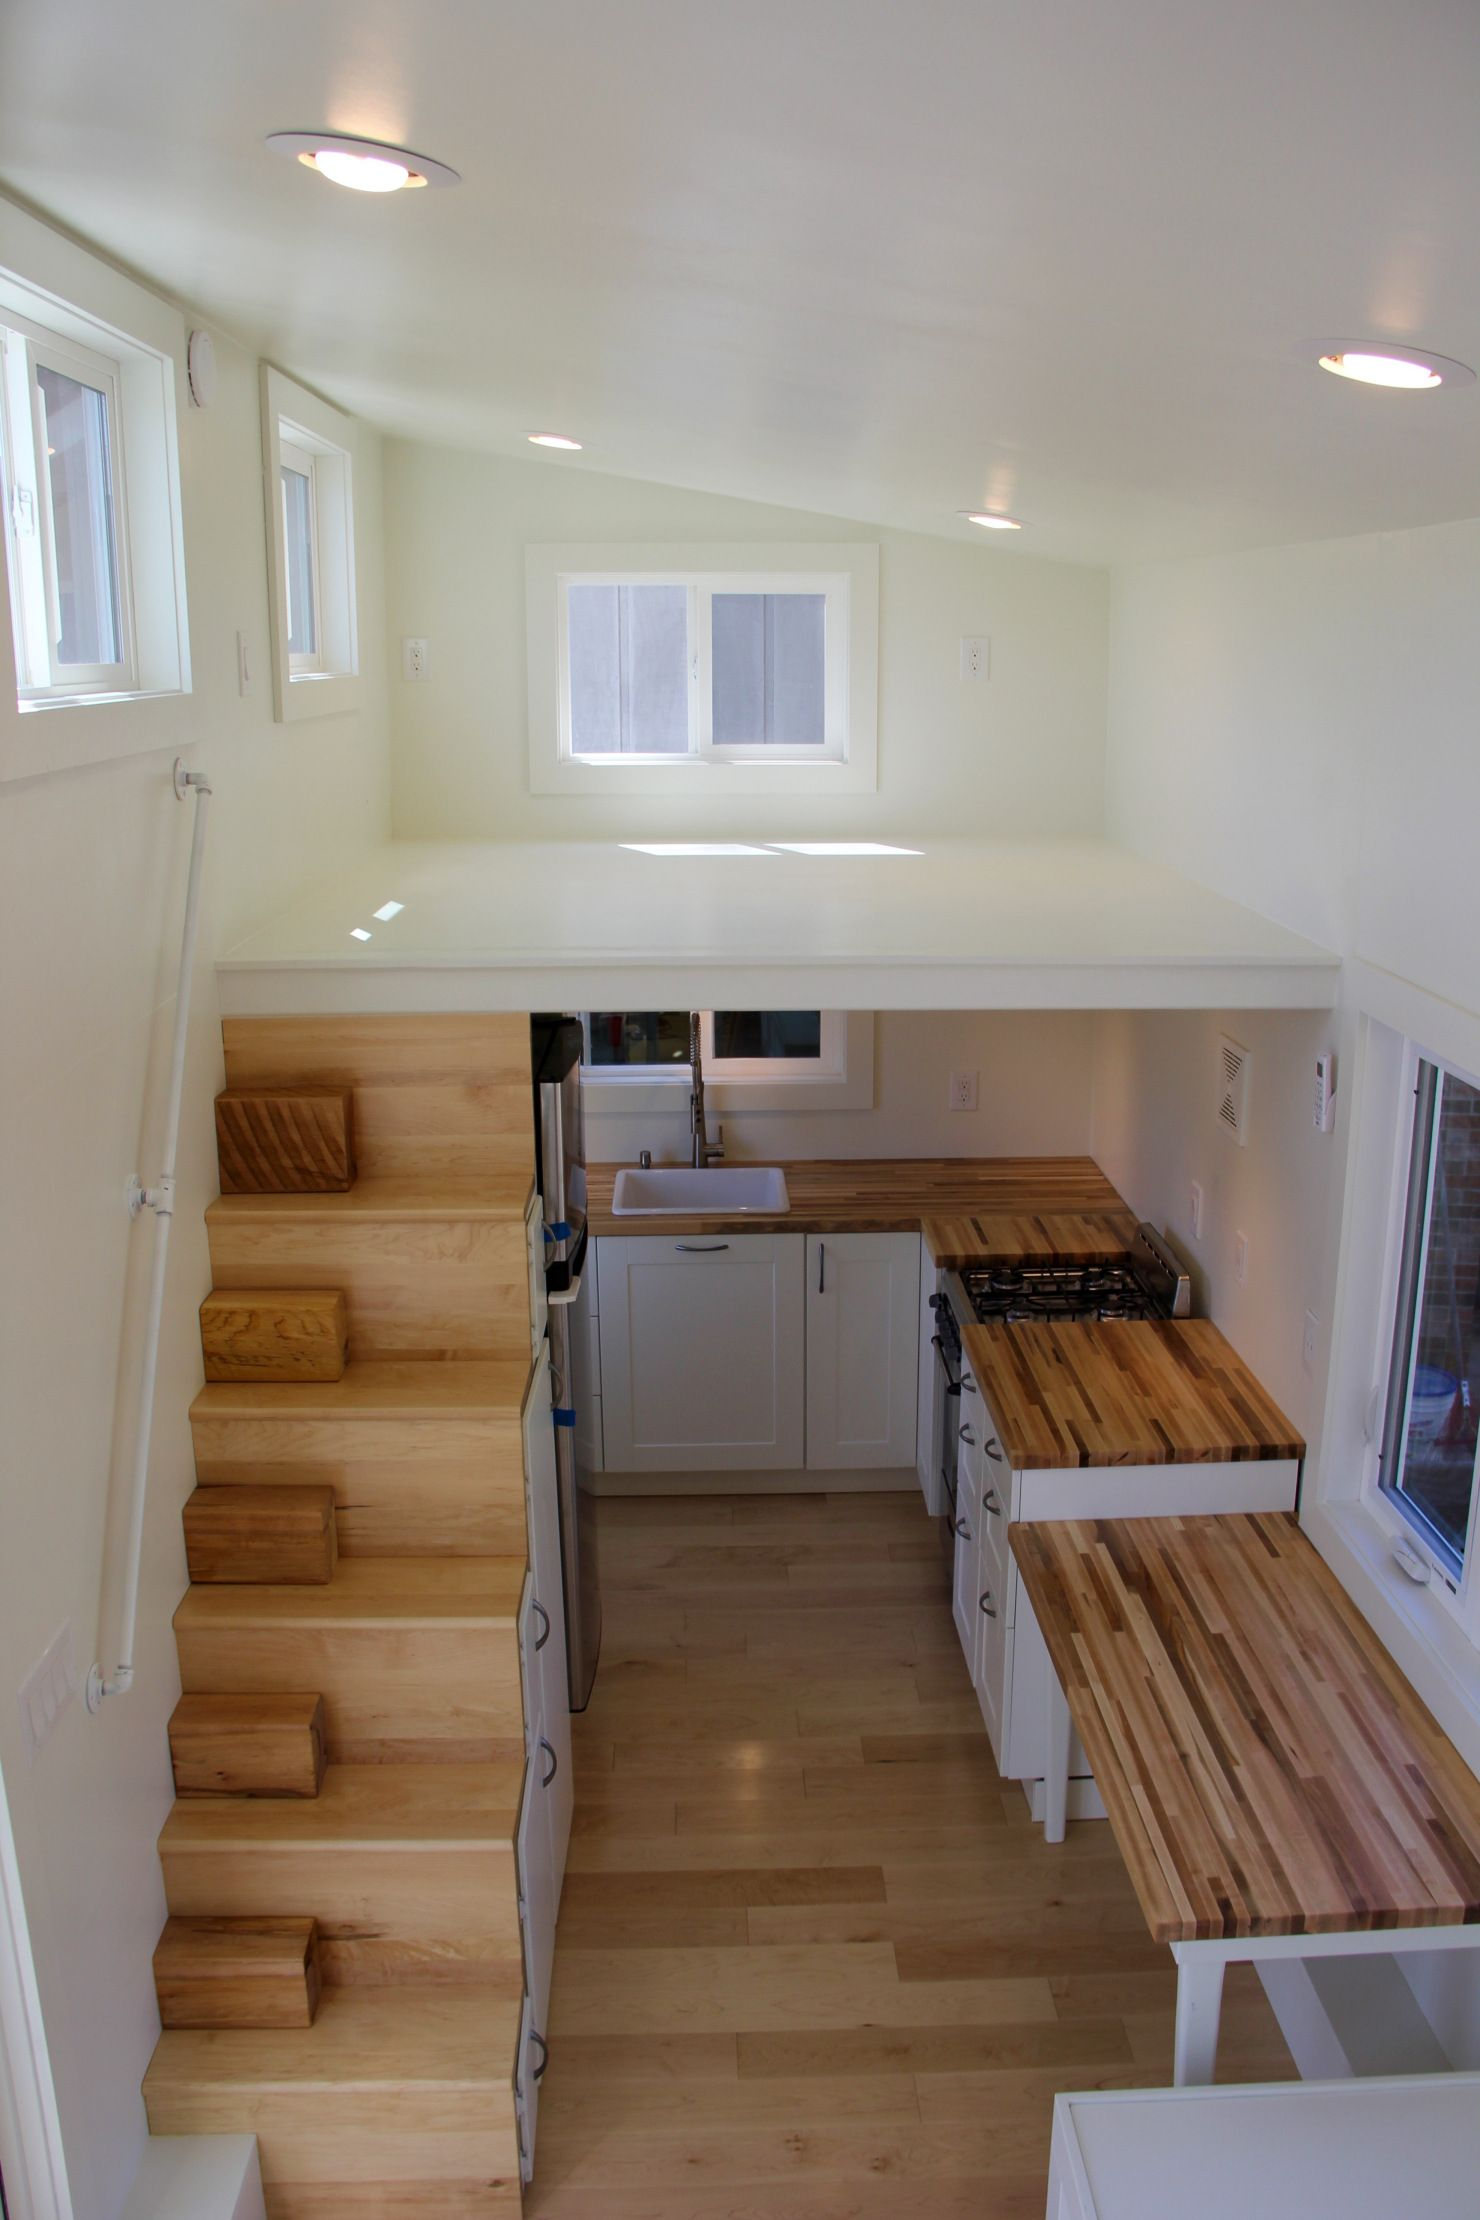 home interior design stairs%0A The Chickadee tiny home is an       design featuring two lofts  stair storage